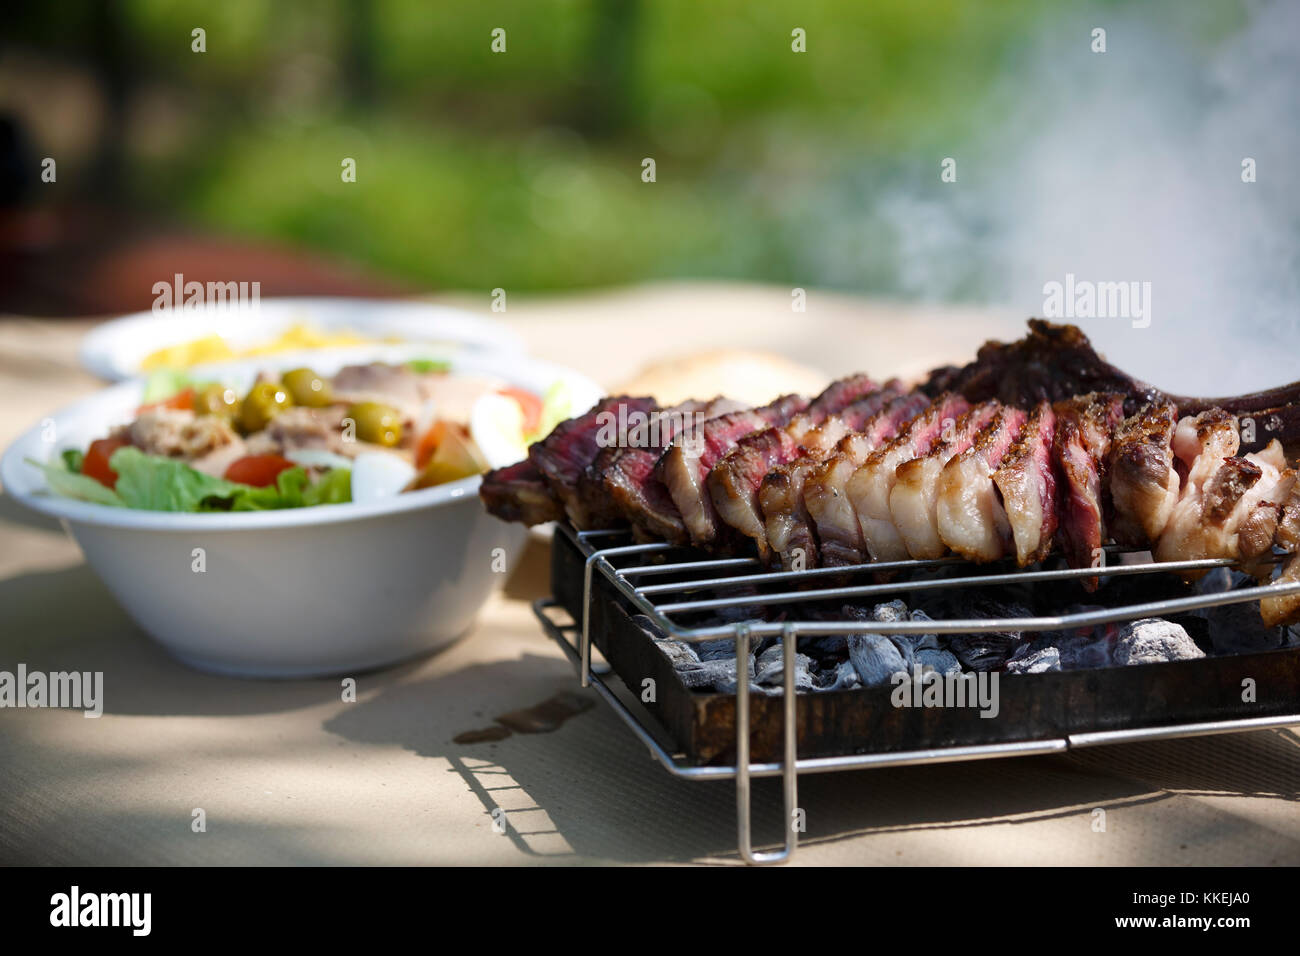 Steak with salad and fries. - Stock Image